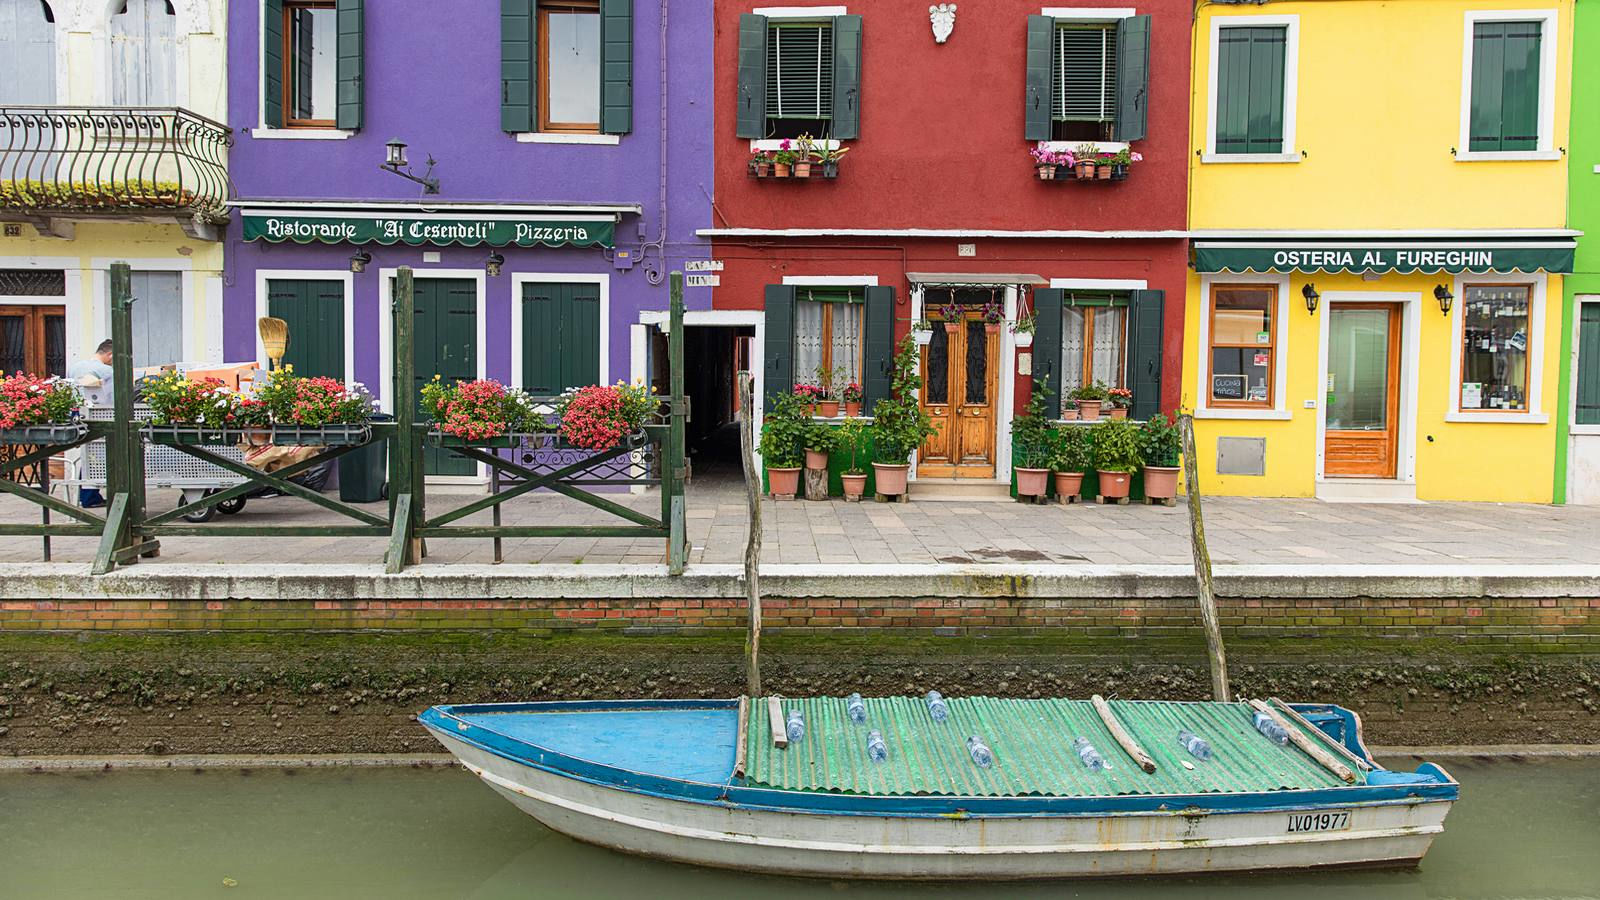 Le tipiche case colorate di Burano